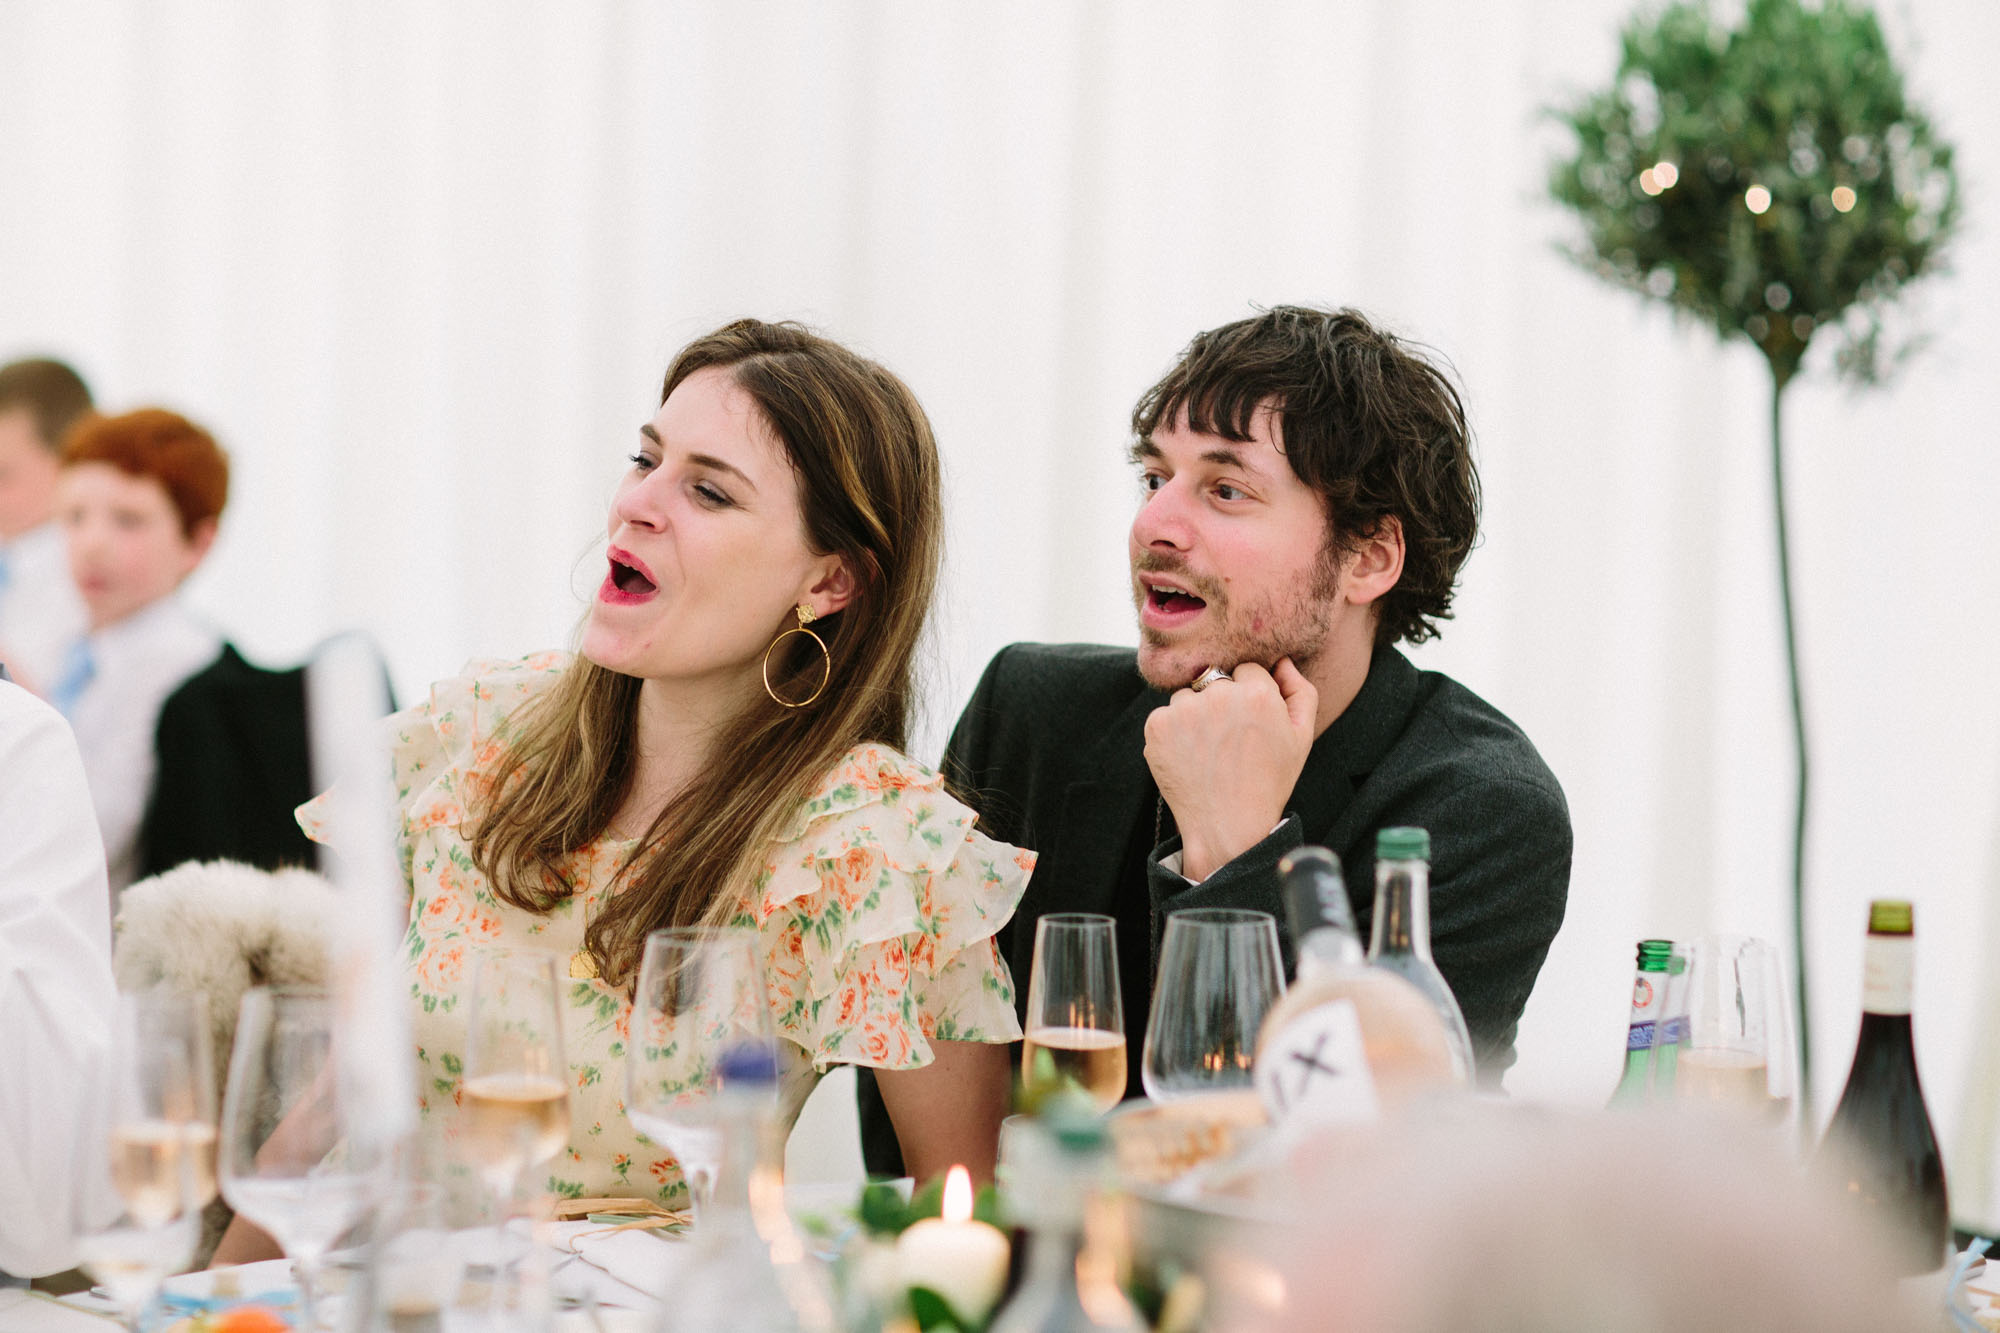 Wedding guests cheering and laughing during speeches in marquee